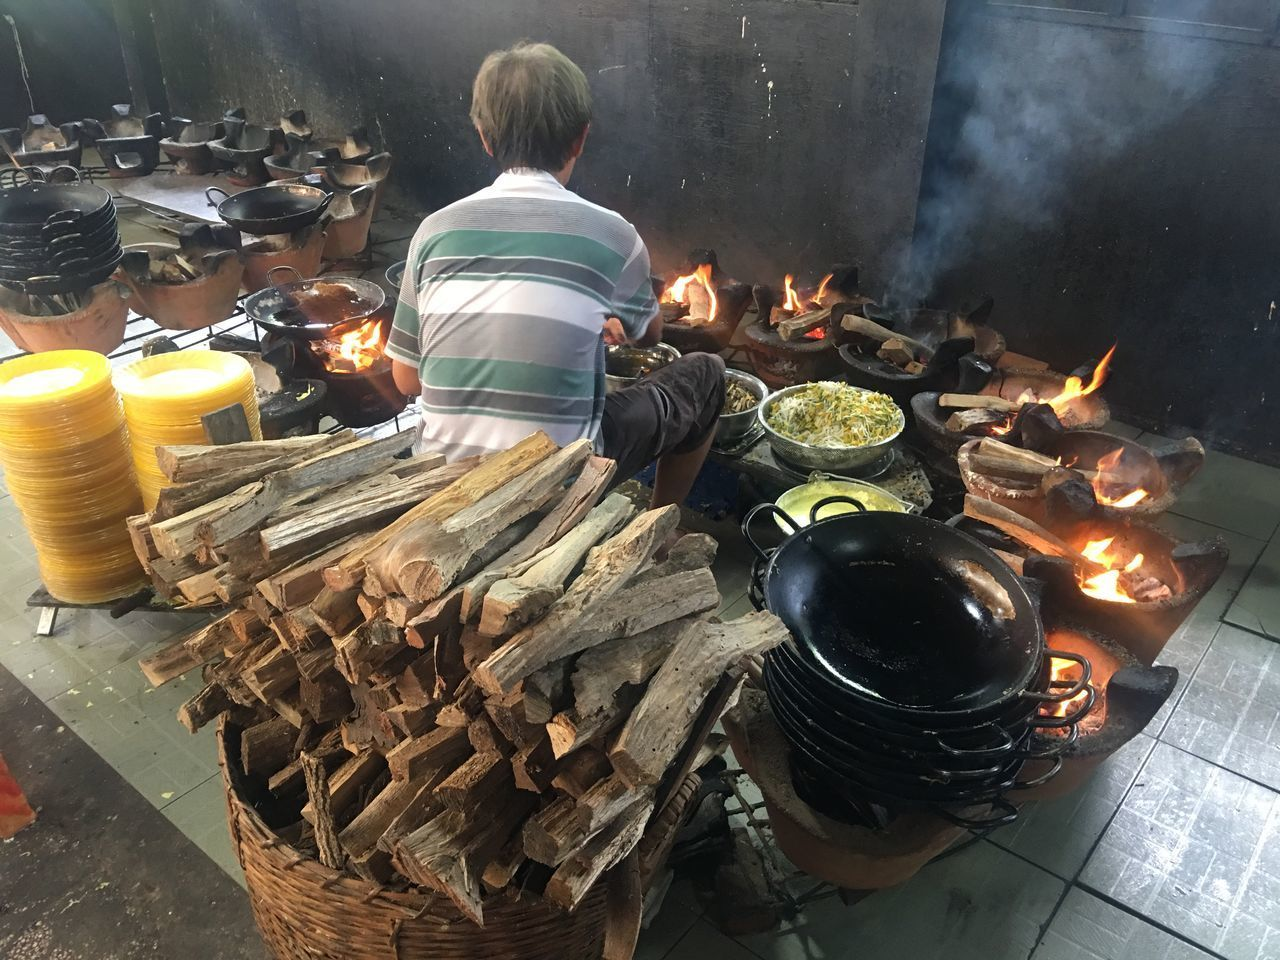 heat - temperature, real people, burning, fire, fire - natural phenomenon, flame, one person, men, preparation, food, food and drink, glowing, nature, smoke - physical structure, high angle view, container, rear view, log, firewood, preparing food